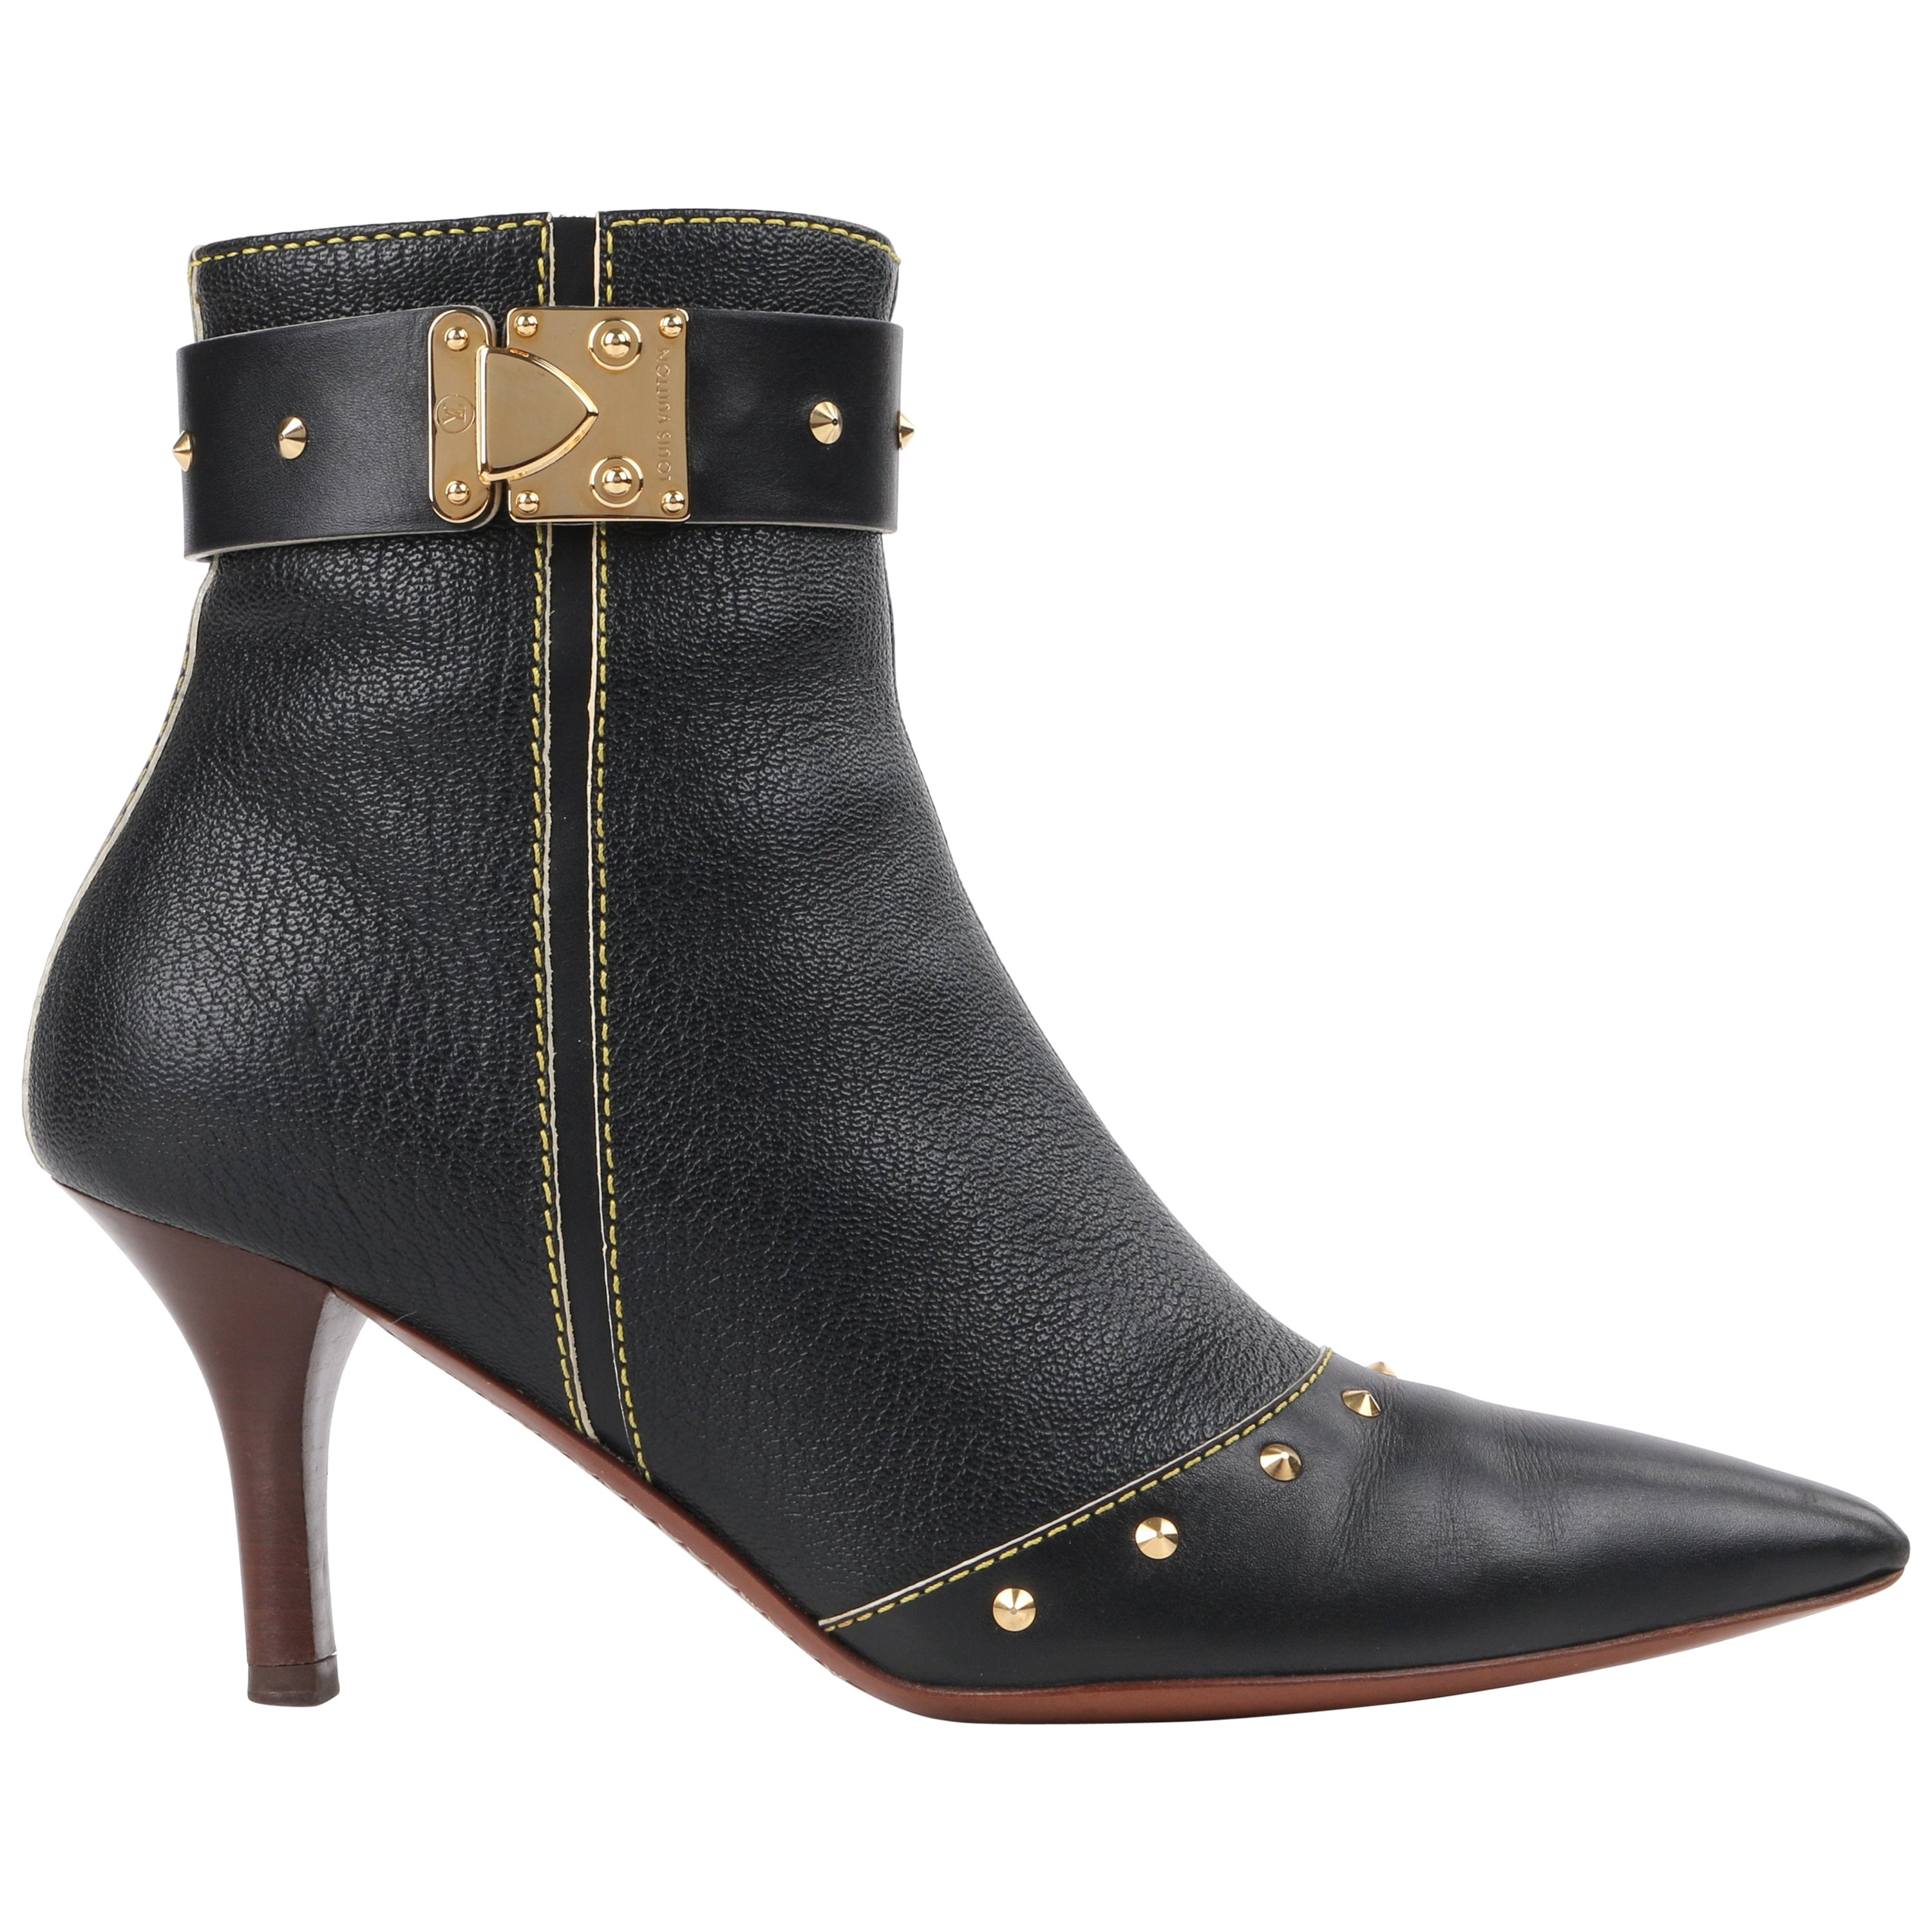 """LOUIS VUITTON c.2003 """"Suhali"""" Black Leather Gold Studded Pointed Toe Ankle Boots"""